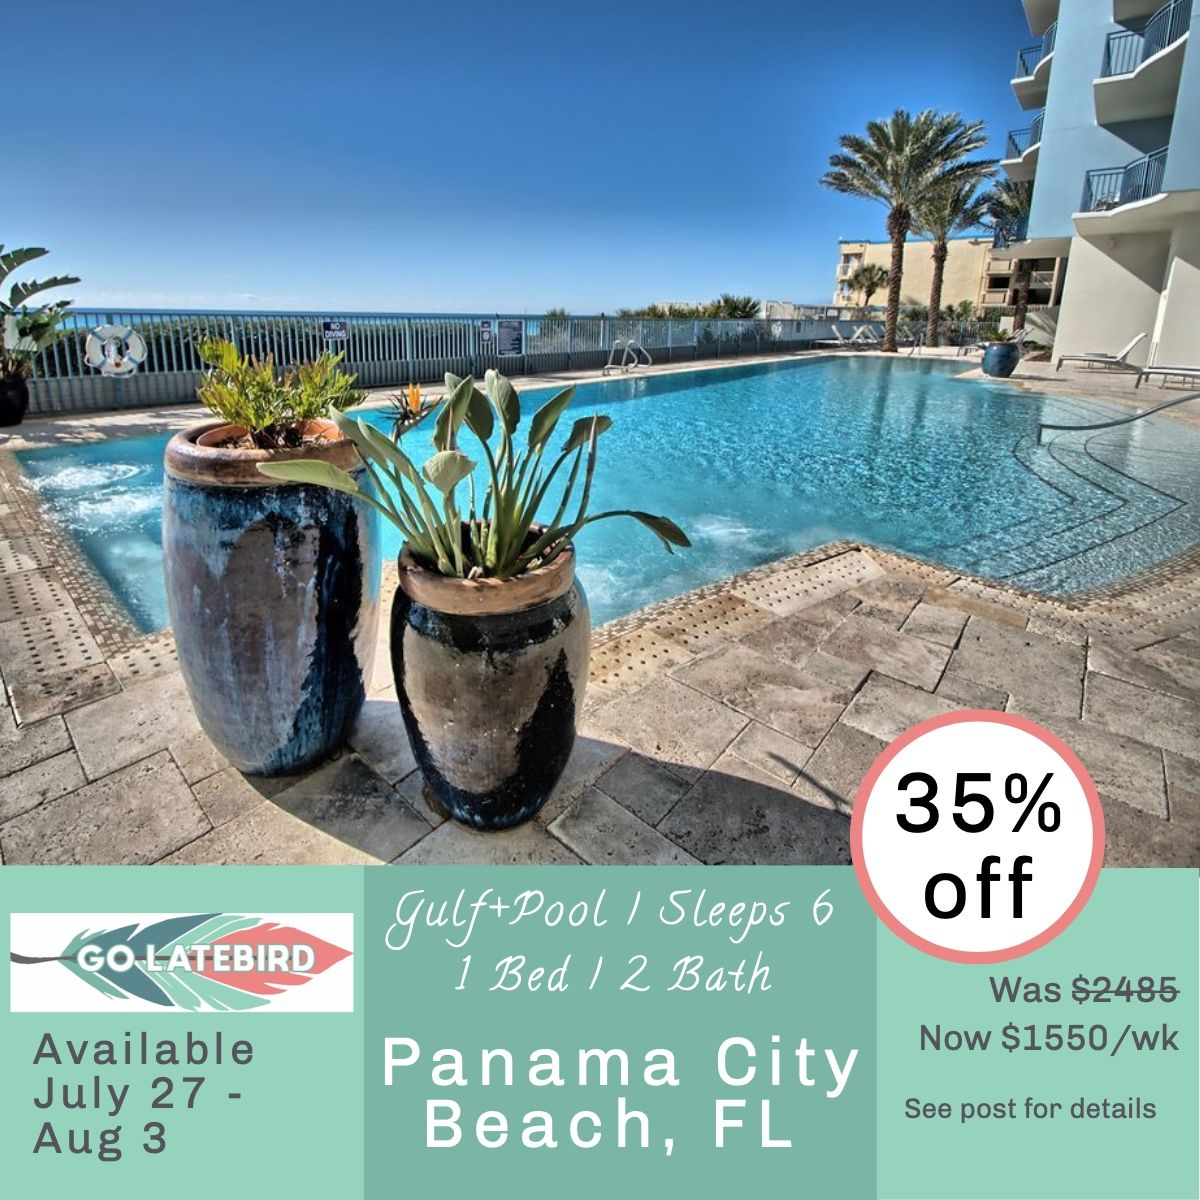 This Is The One Get Yourself To The Beach Gulf Front No Less For Just 1 550 Total For The Panama City Panama Panama City Beach Florida Panama City Beach